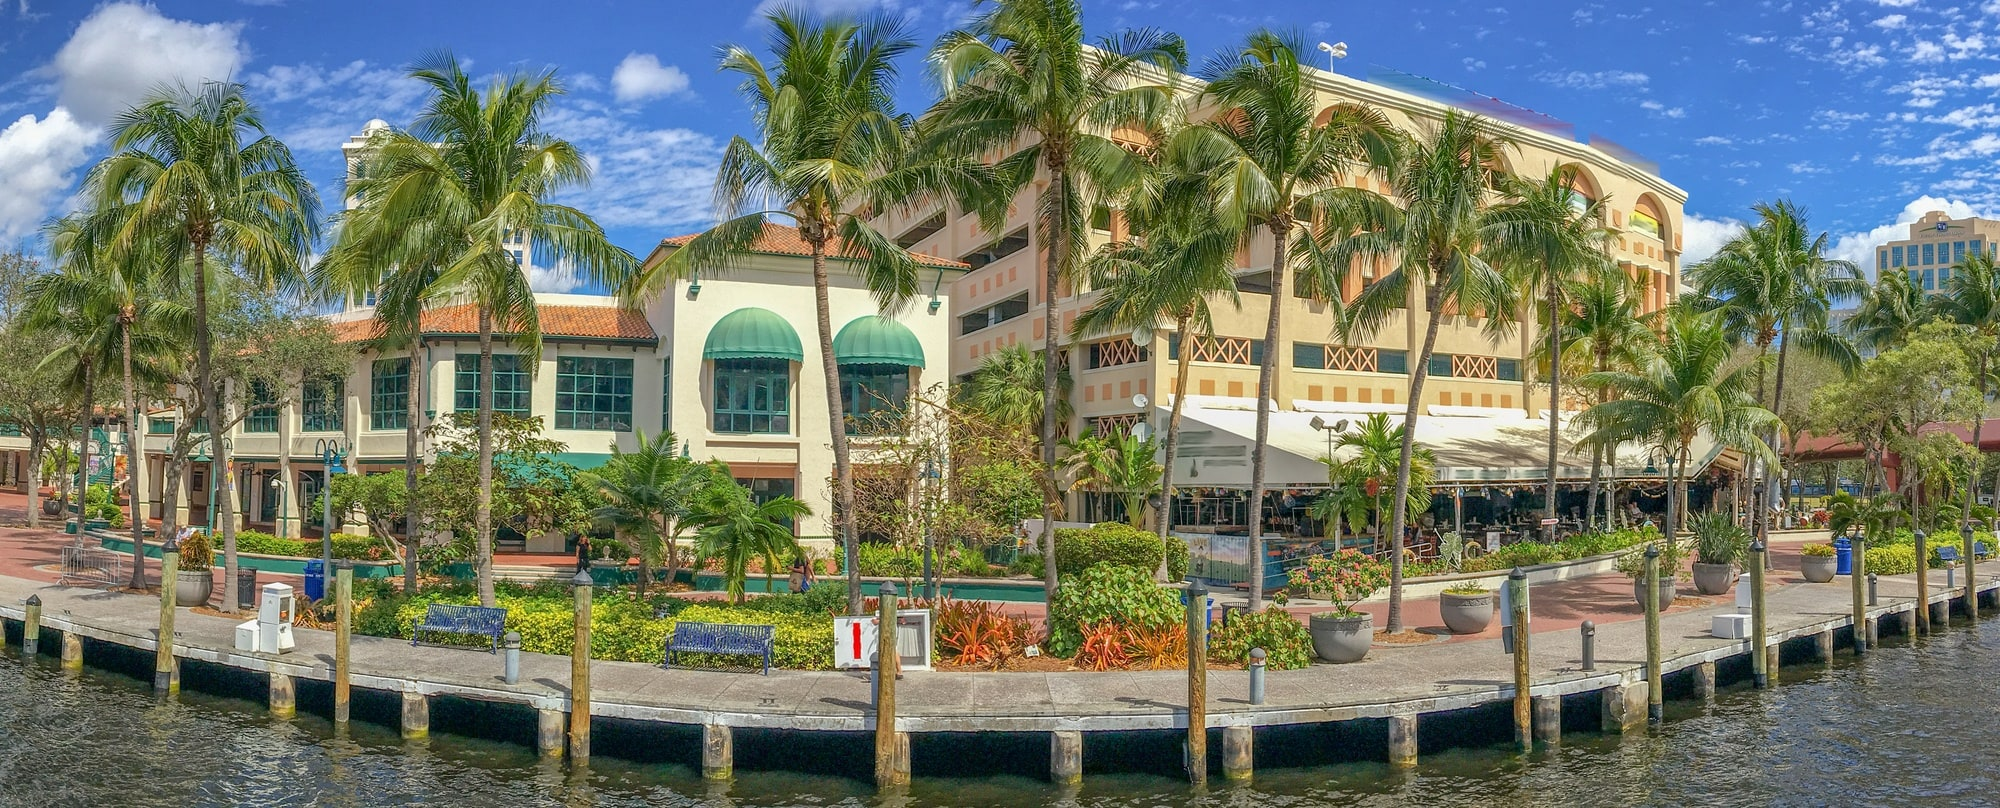 The beautiful River Walk Fort Lauderdale ~ Fort Lauderdale Art Scene